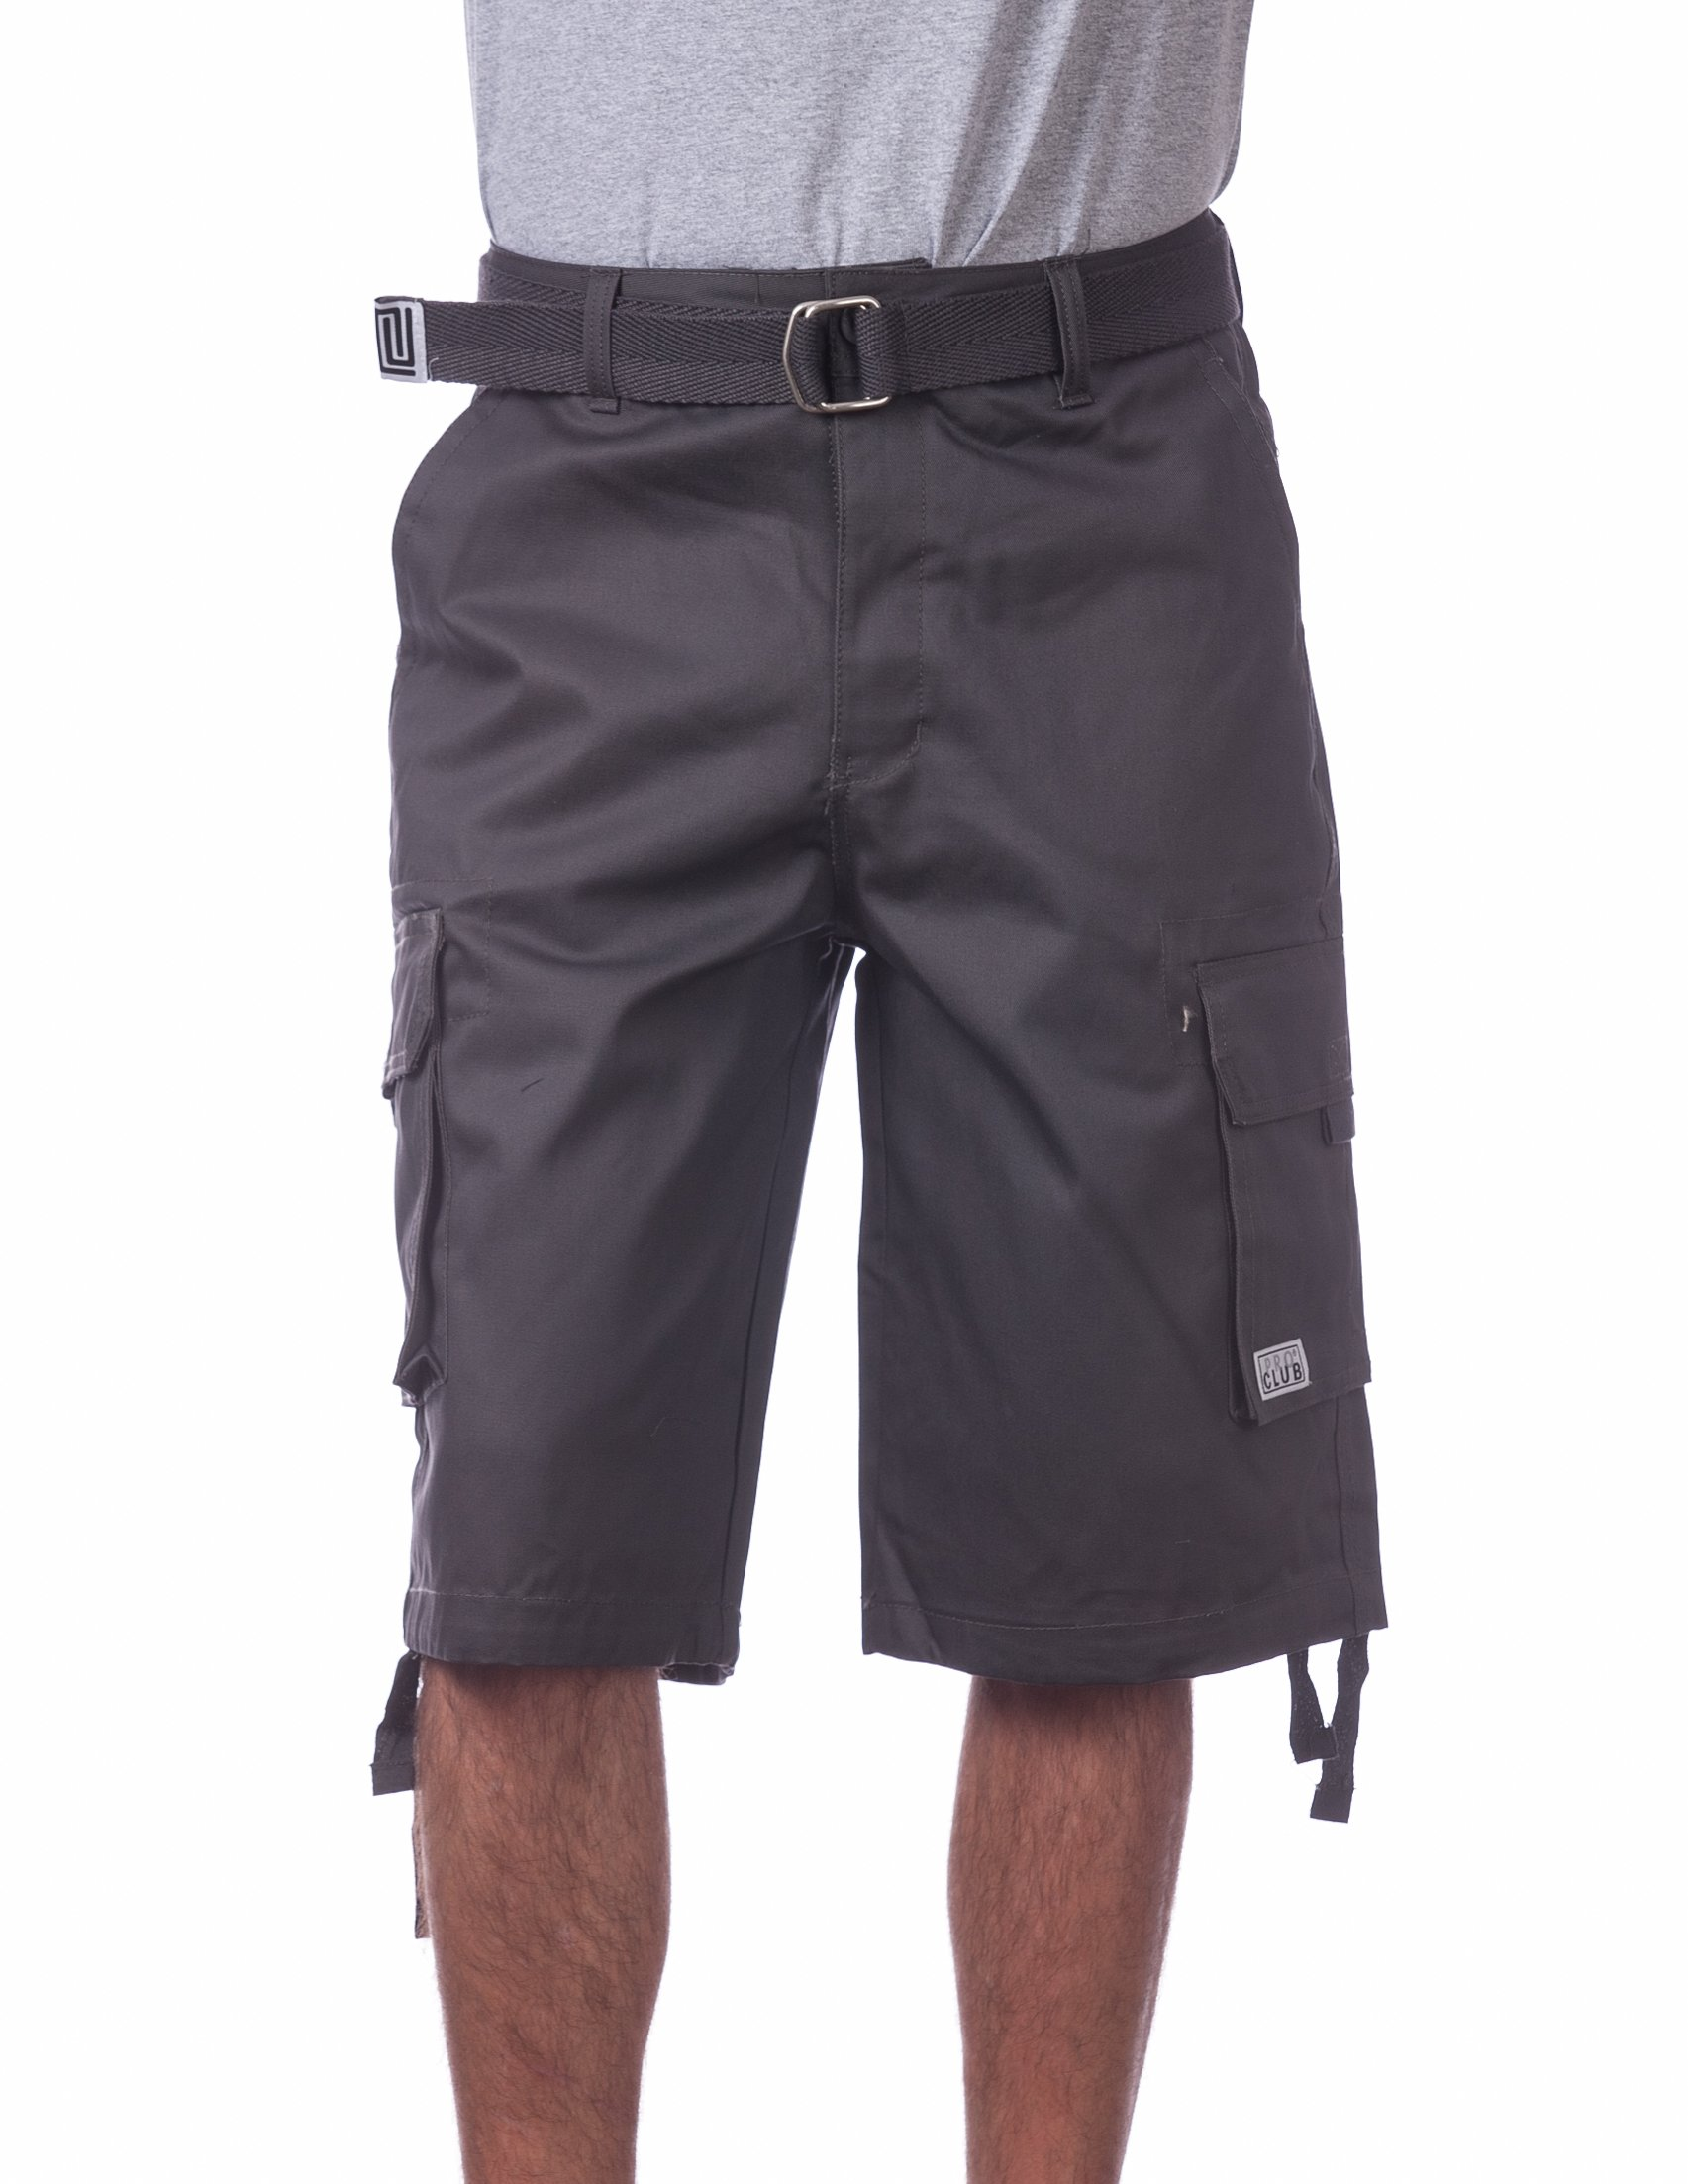 Pro Club Men's Cotton Twill Cargo Shorts with Belt, 38'', Charcoal